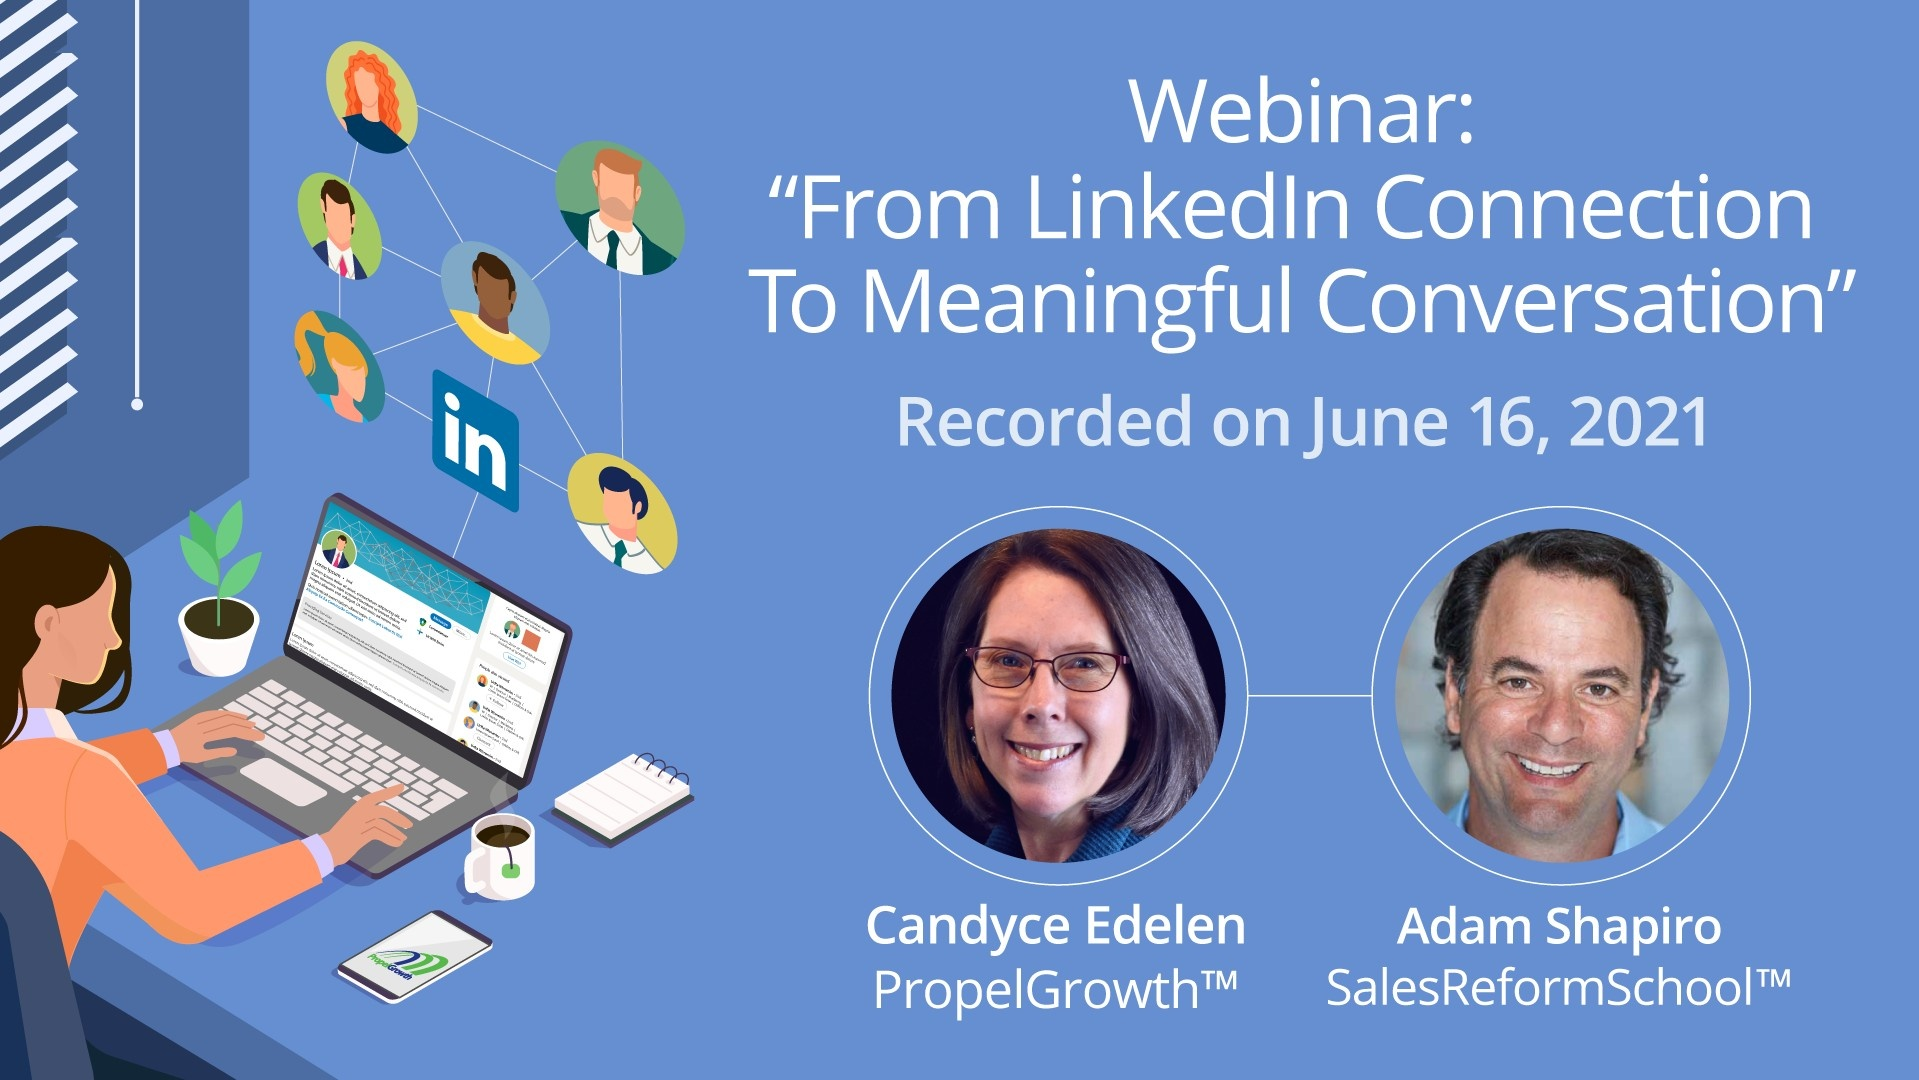 Webinar: From LinkedIn Connection to Meaningful Conversation